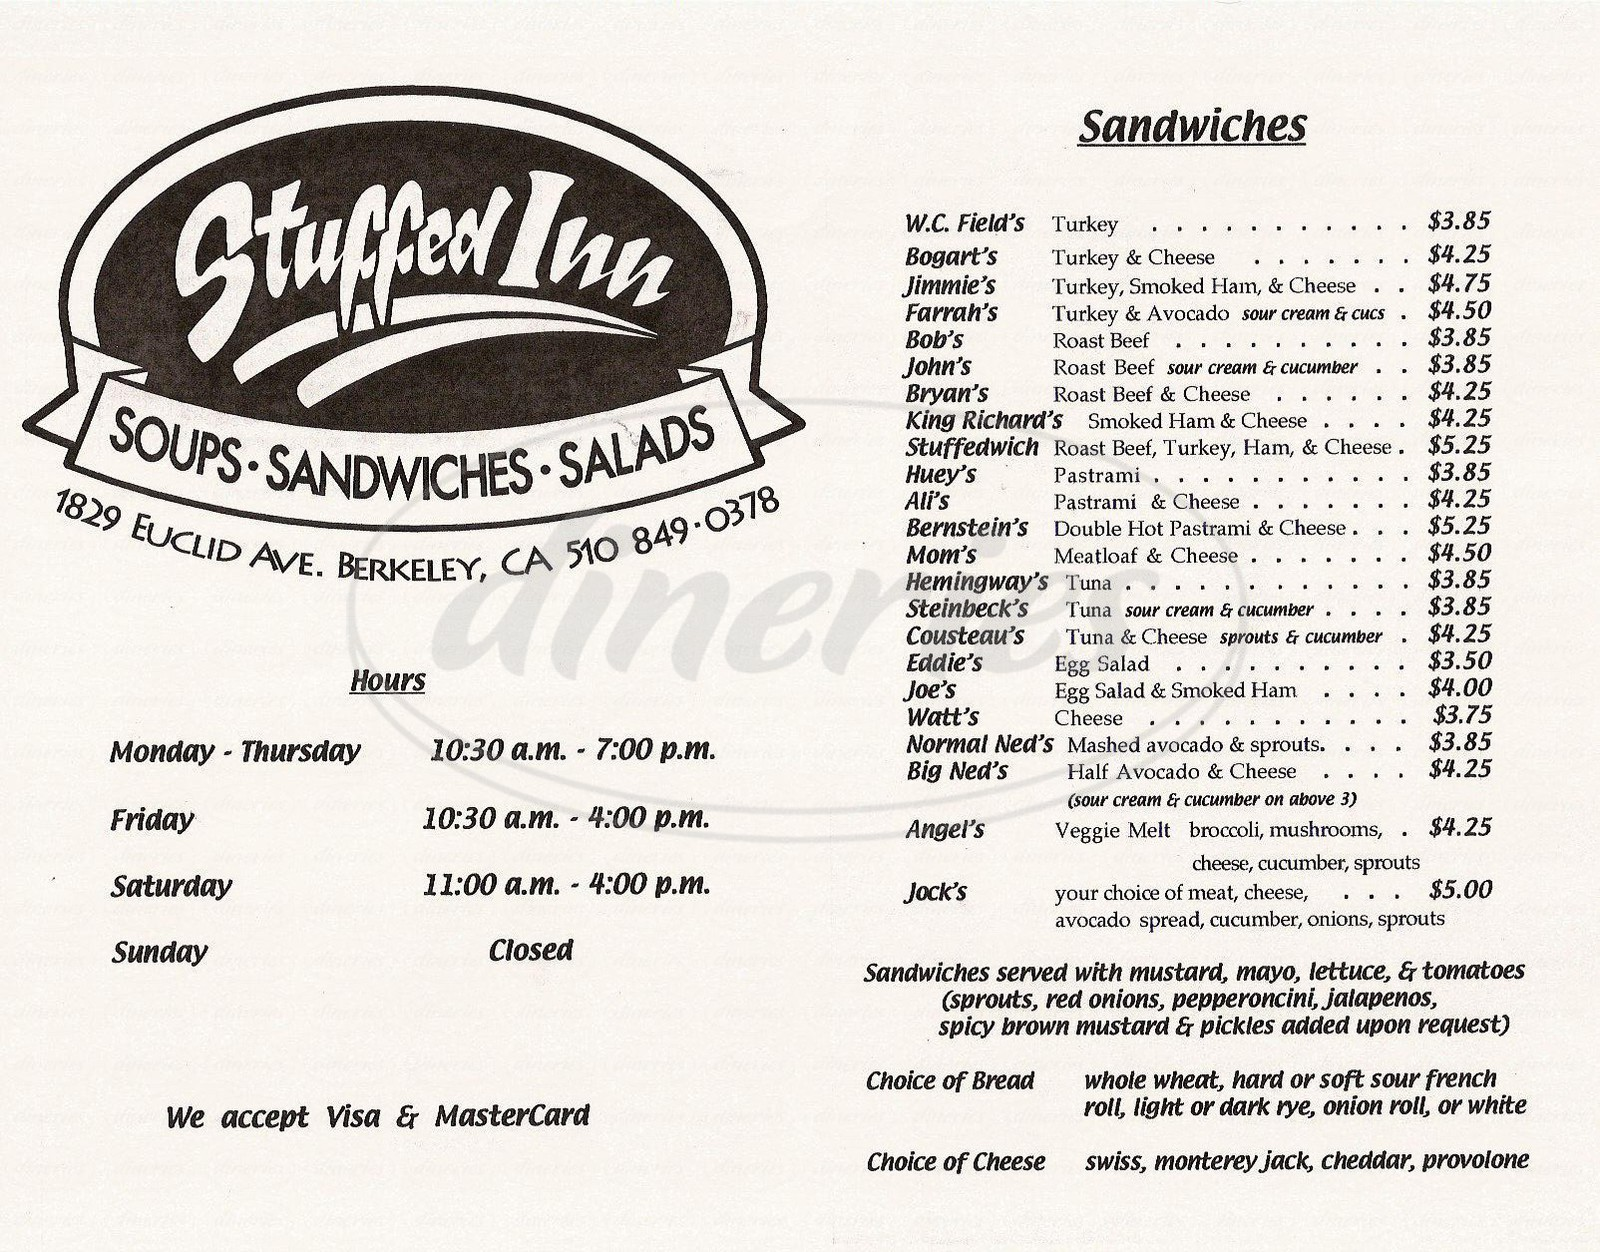 menu for Stuffed Inn